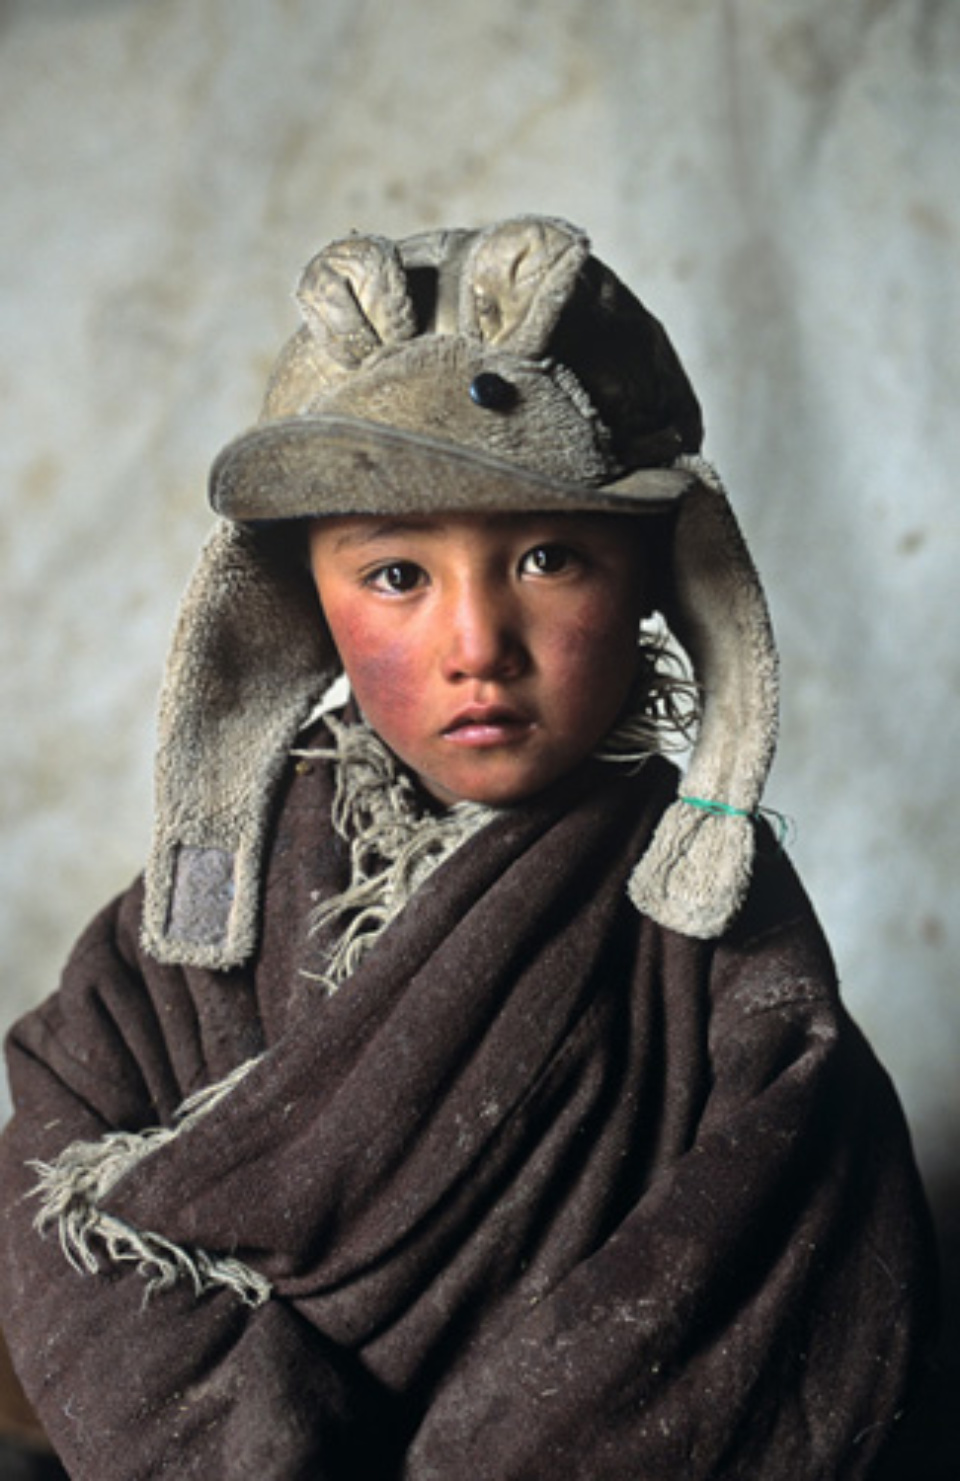 Steve McCurry: Bunny Ears Amdo, Tibet, 2001 Signed, titled, dated and numbered on verso C-print 60 x 50 cm // 101 x 76 cm // 152 x 101 cm Editioned